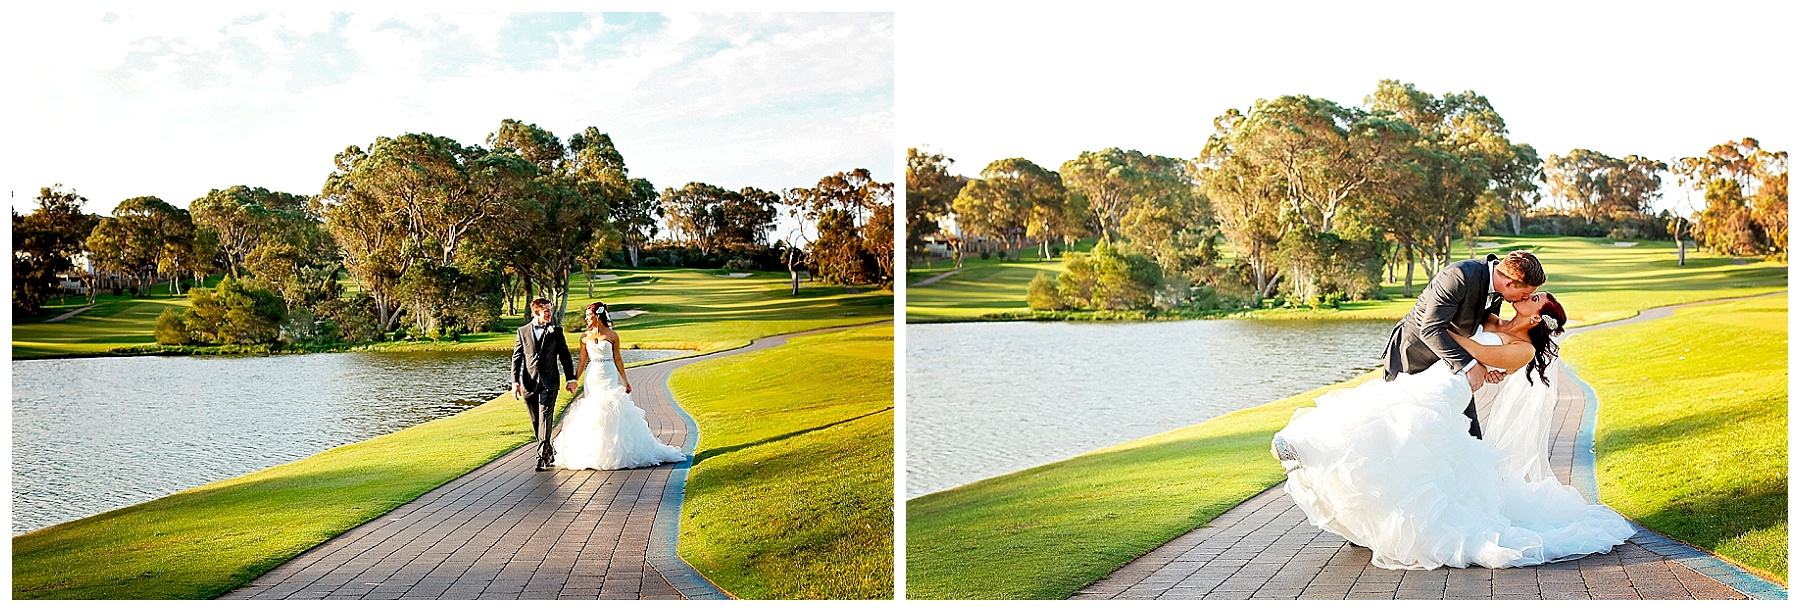 Joondalup Resort wedding photo